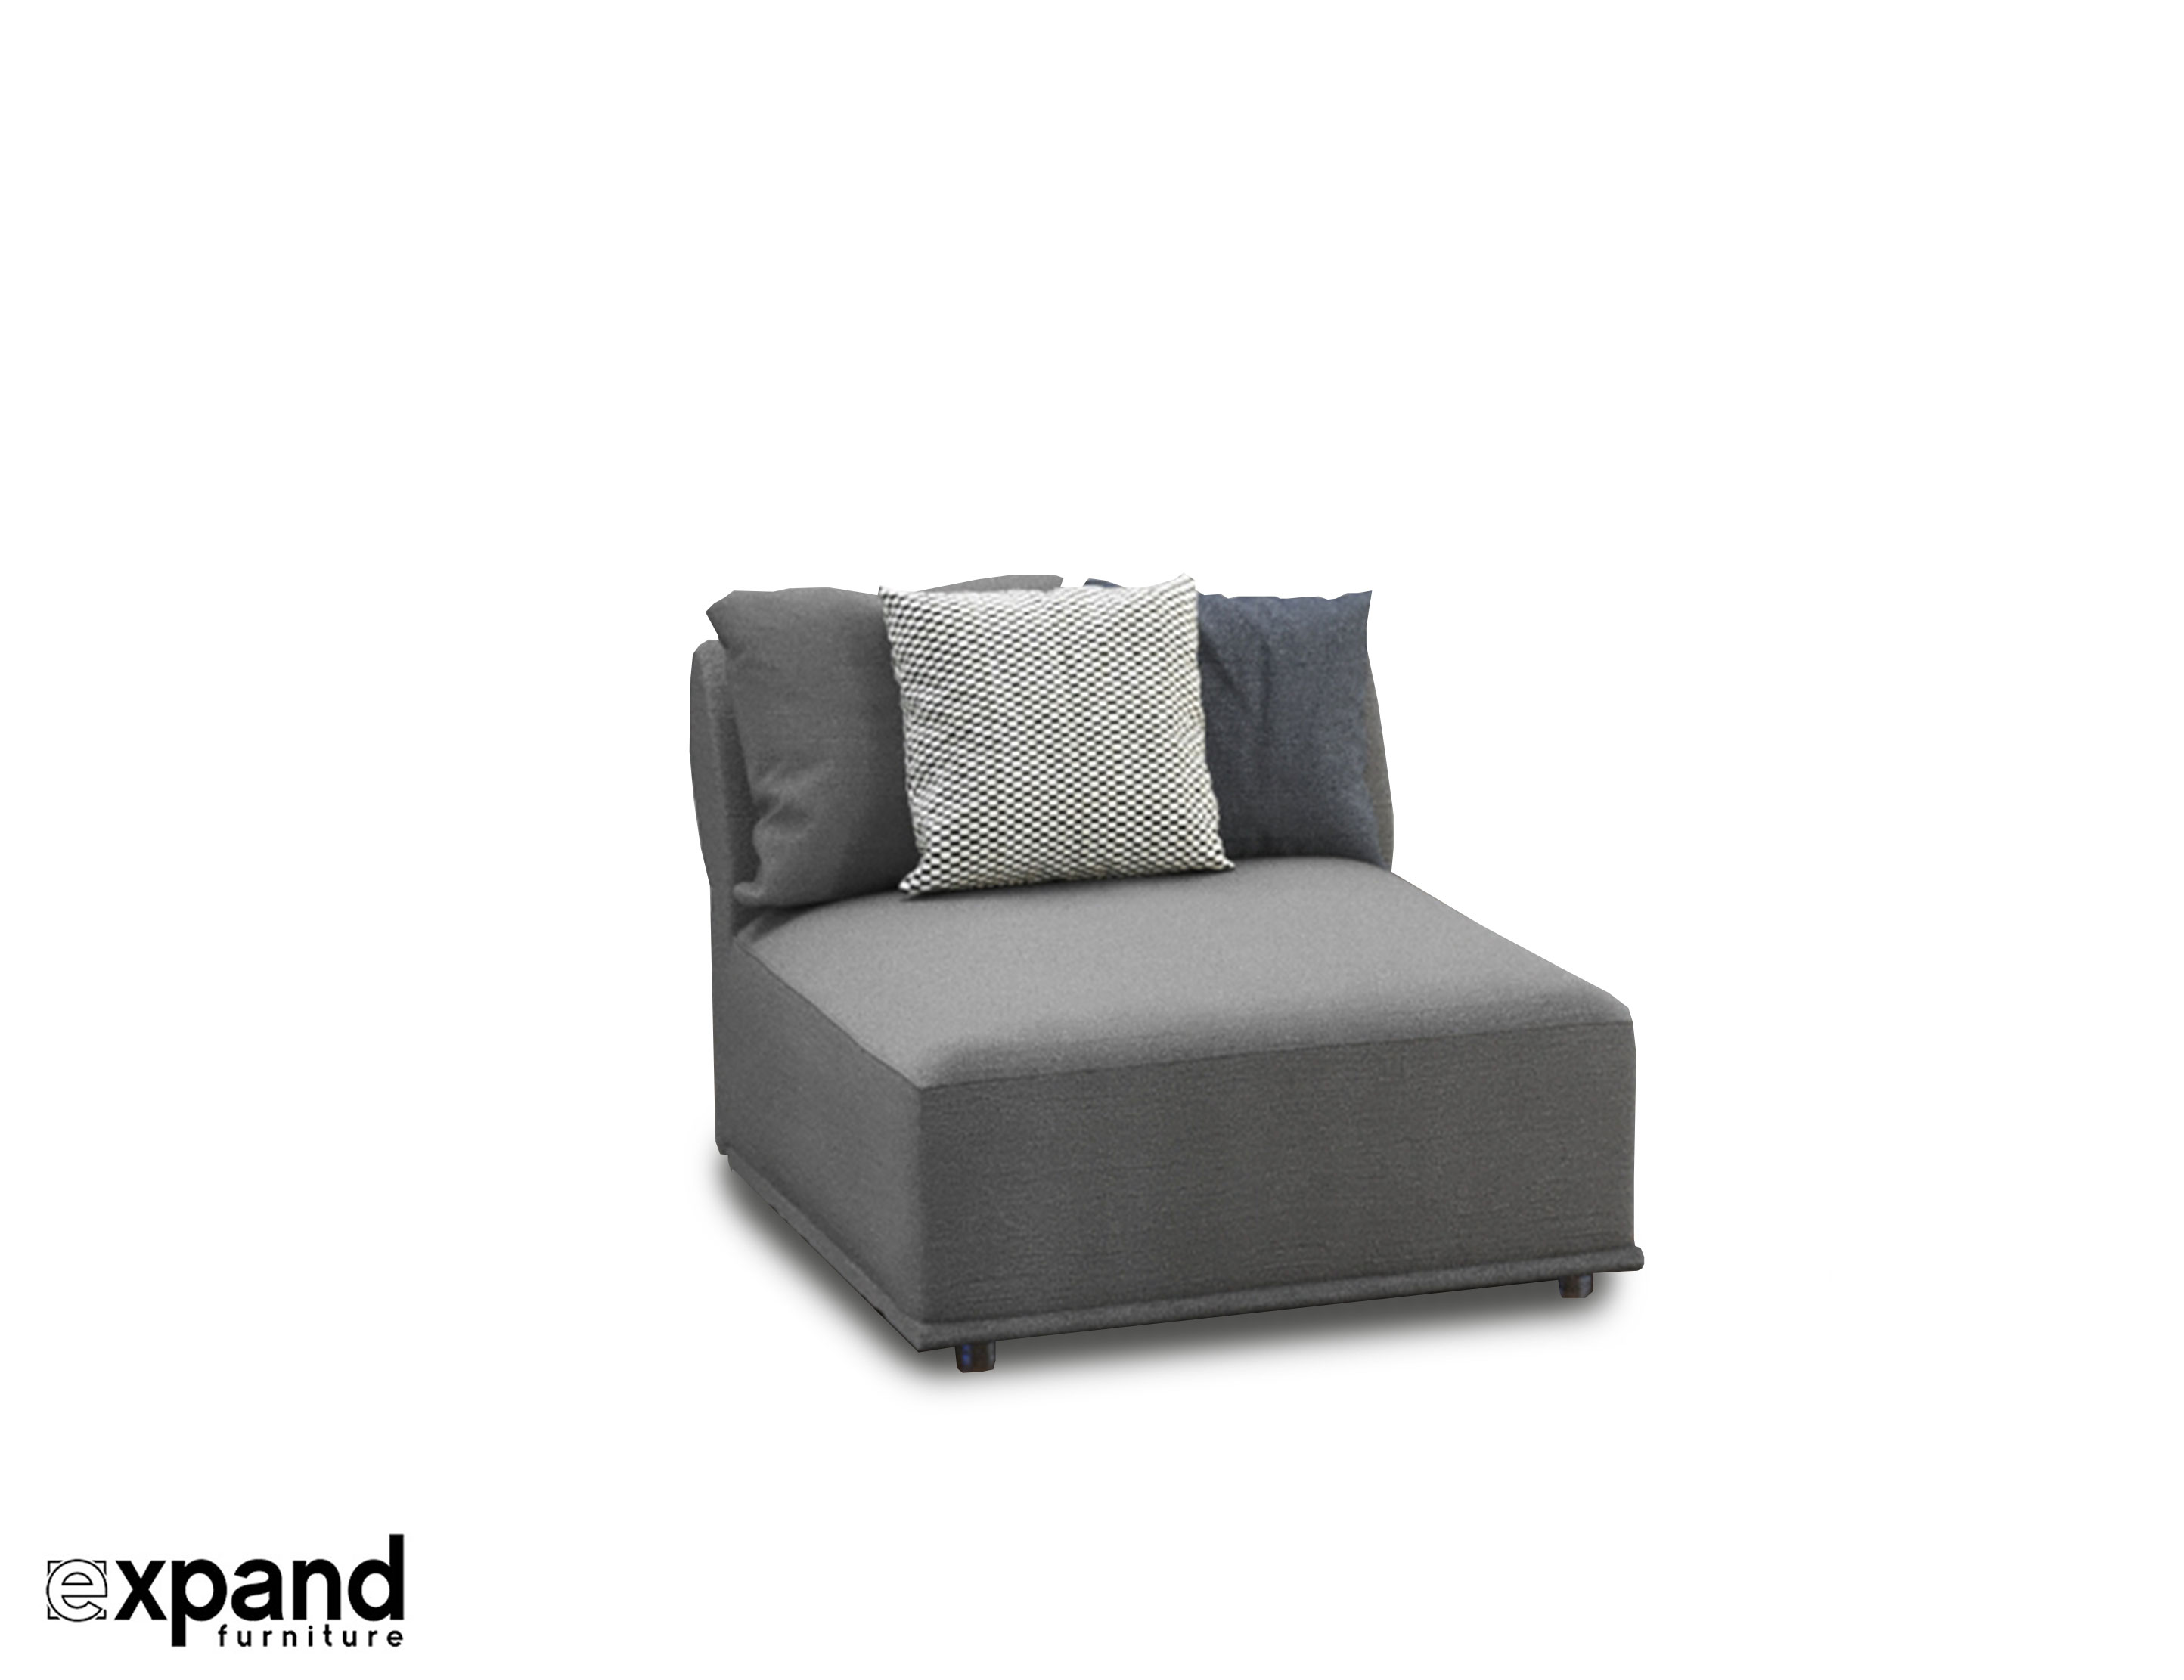 Sectional Couches Stratus Sofa: Single Modular Seat | Expand Furniture